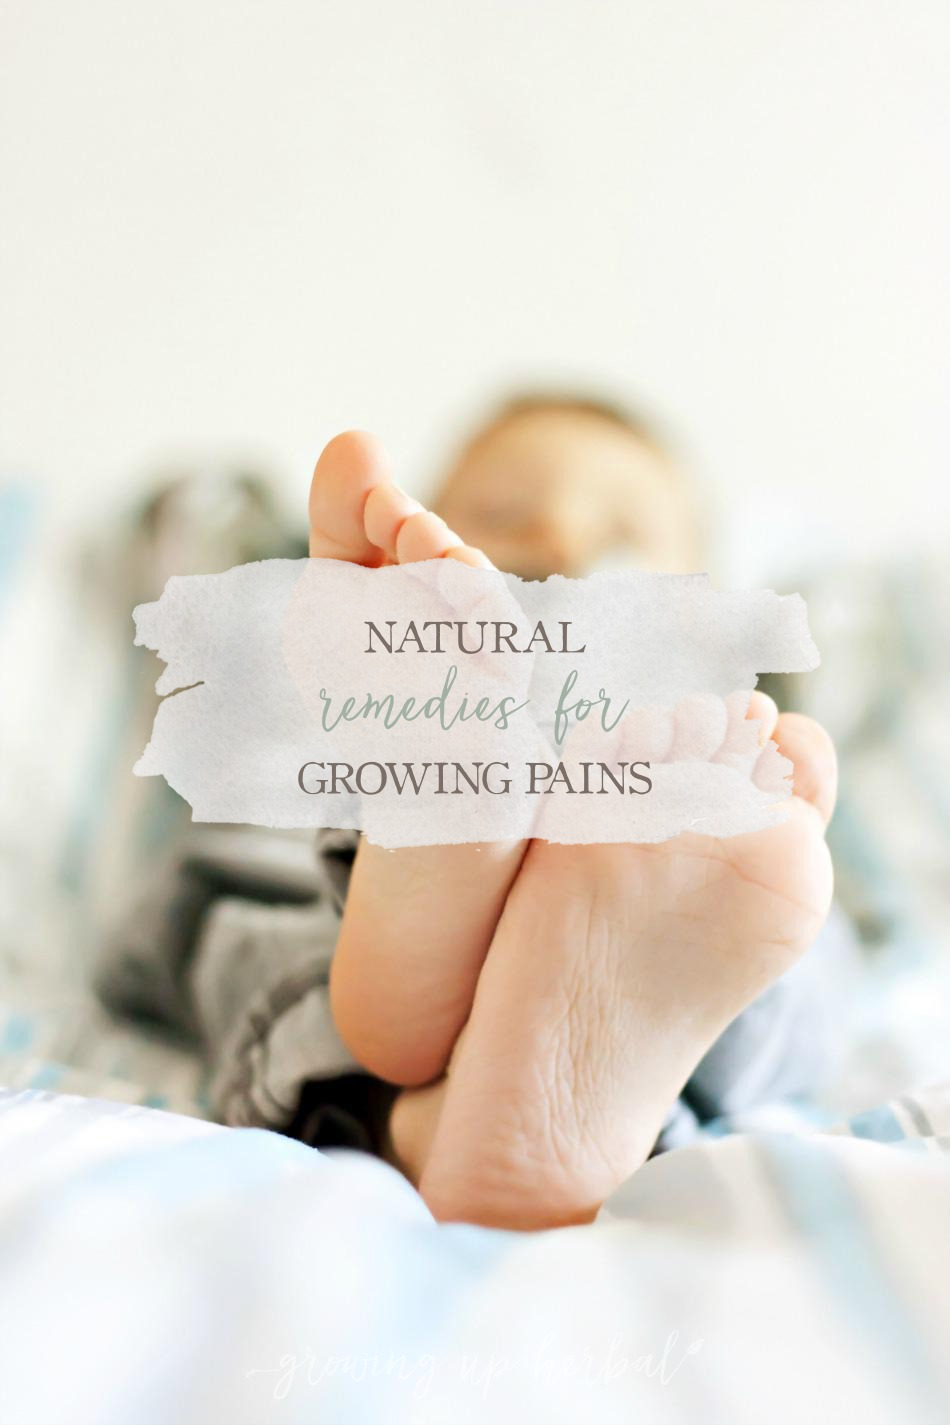 Natural Remedies For Growing Pains | Growing Up Herbal | Kids complaining of leg pain at night? Could be growing pains. Find out what could be causing it and get some natural remedies to help too!